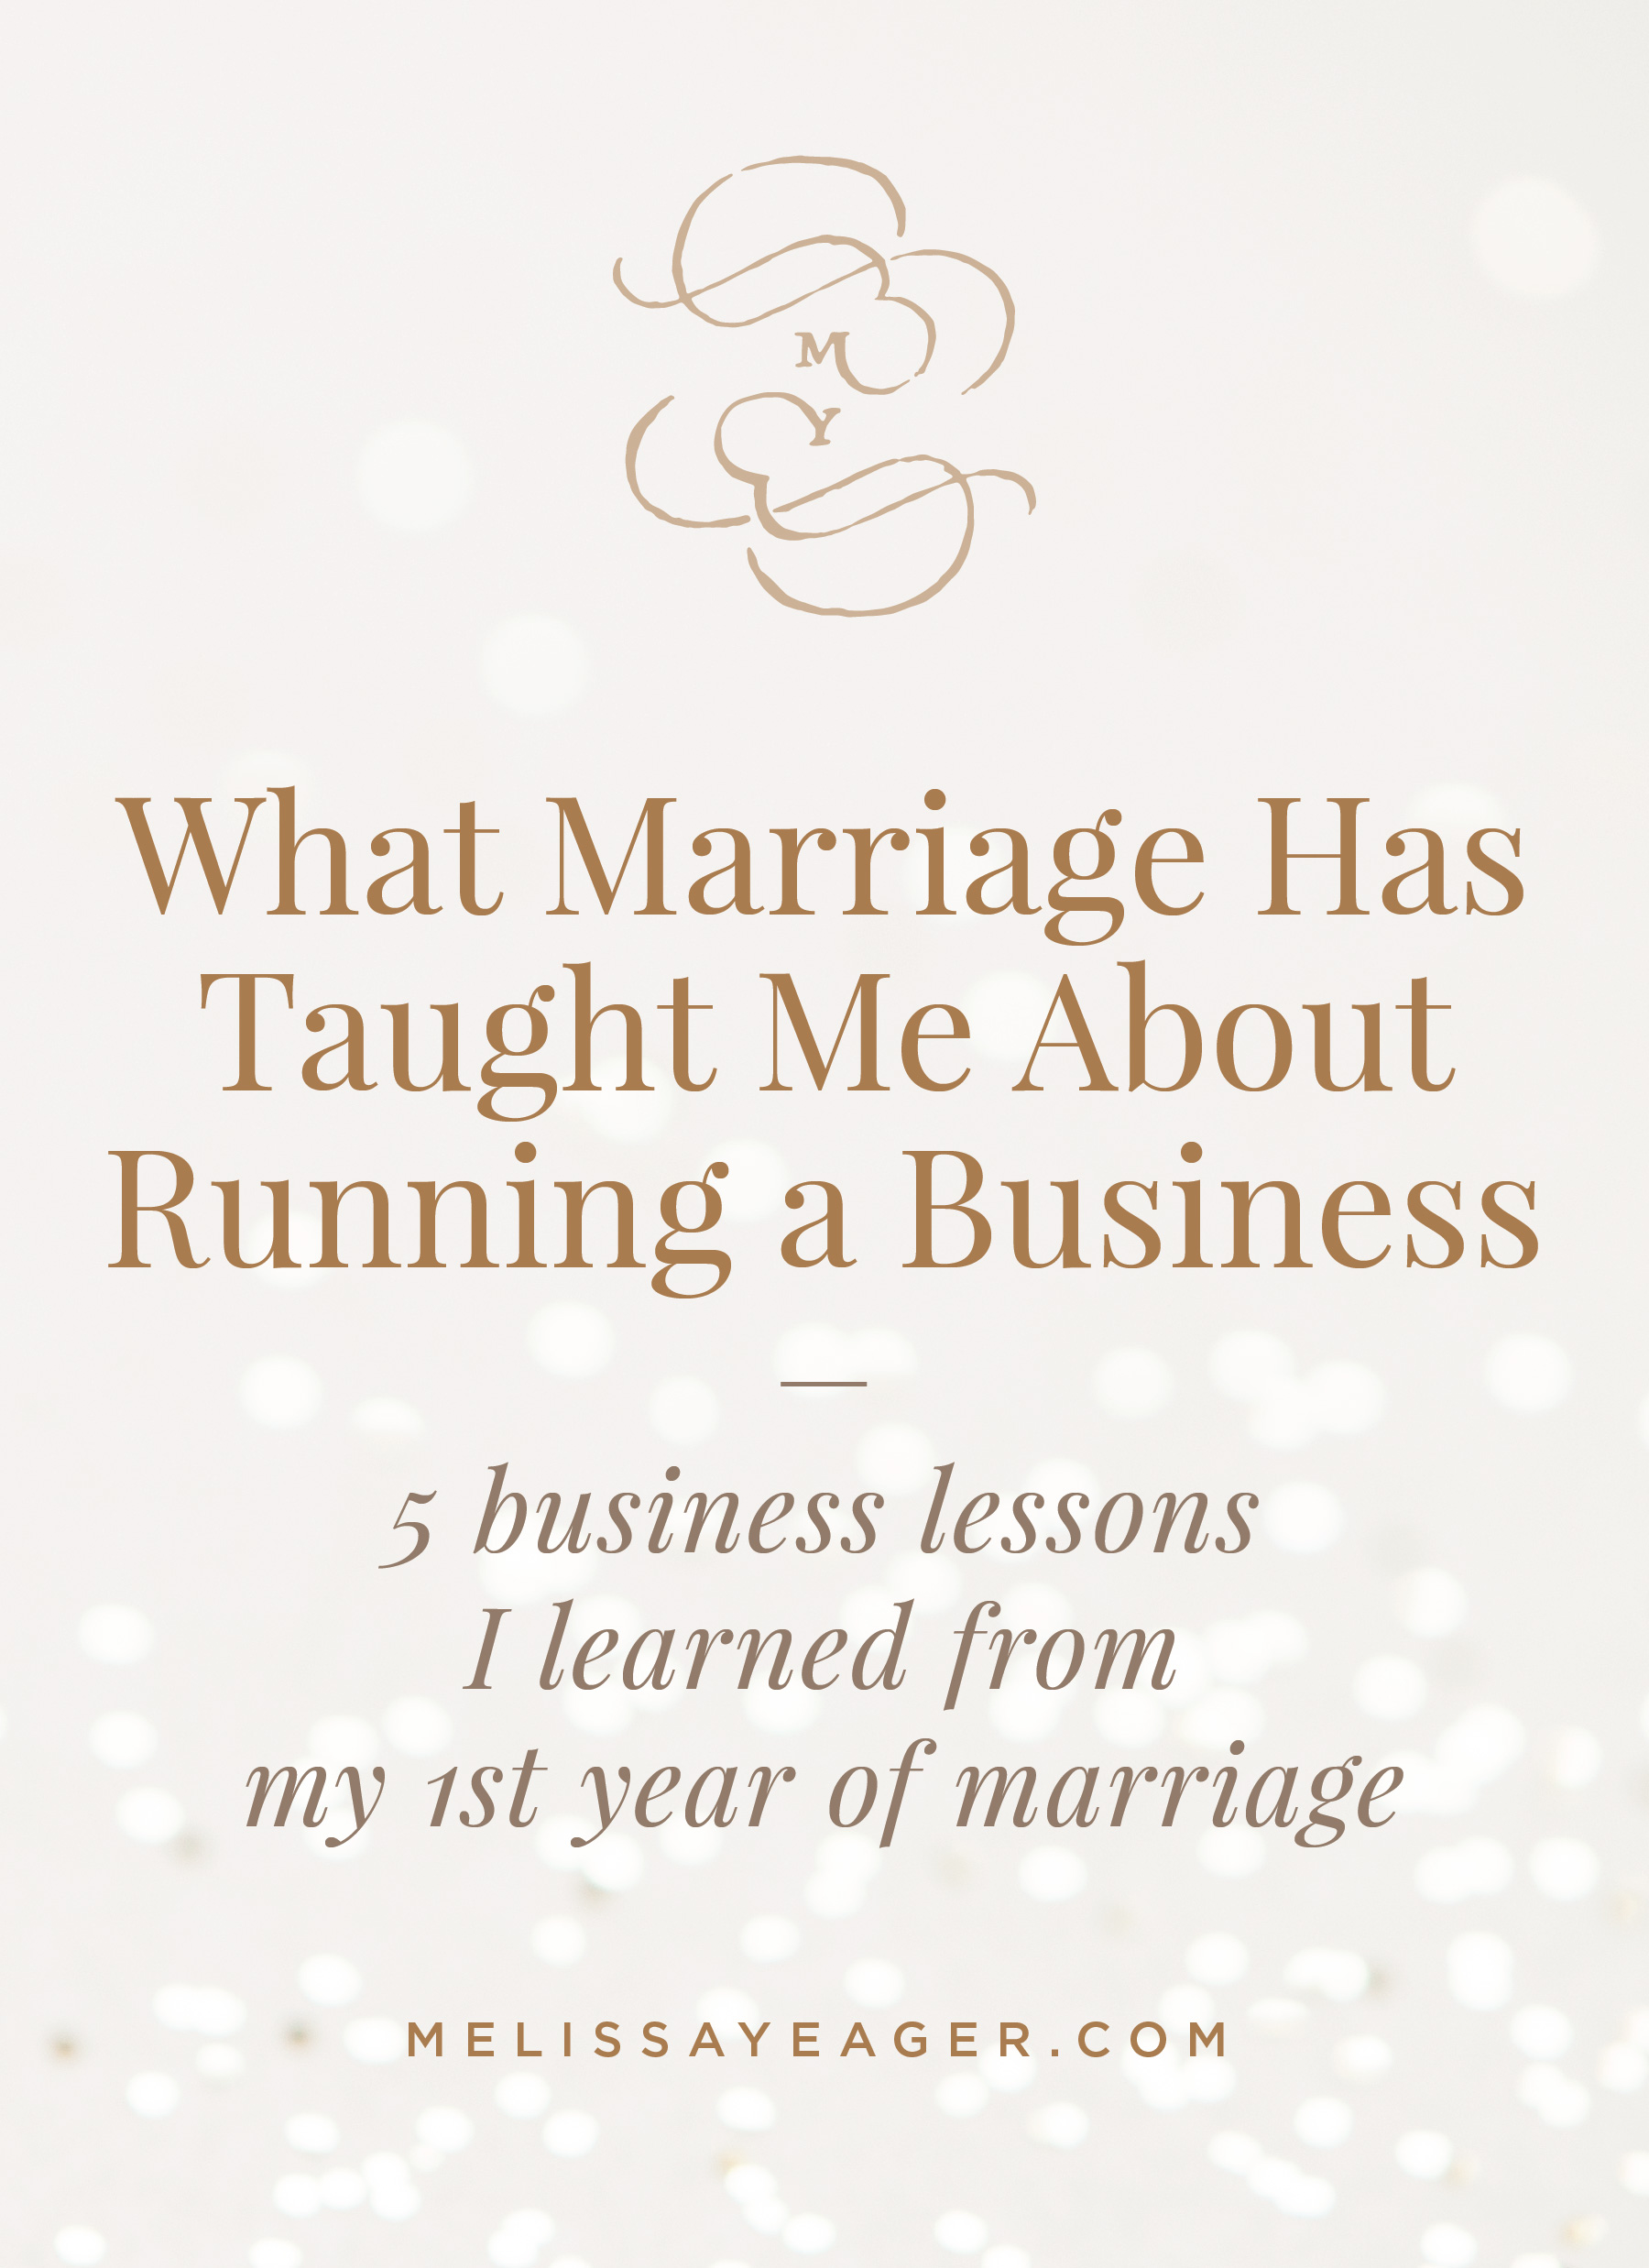 What Marriage Has Taught Me About Running a Business - 5 business lessons I learned from my 1st year of marriage